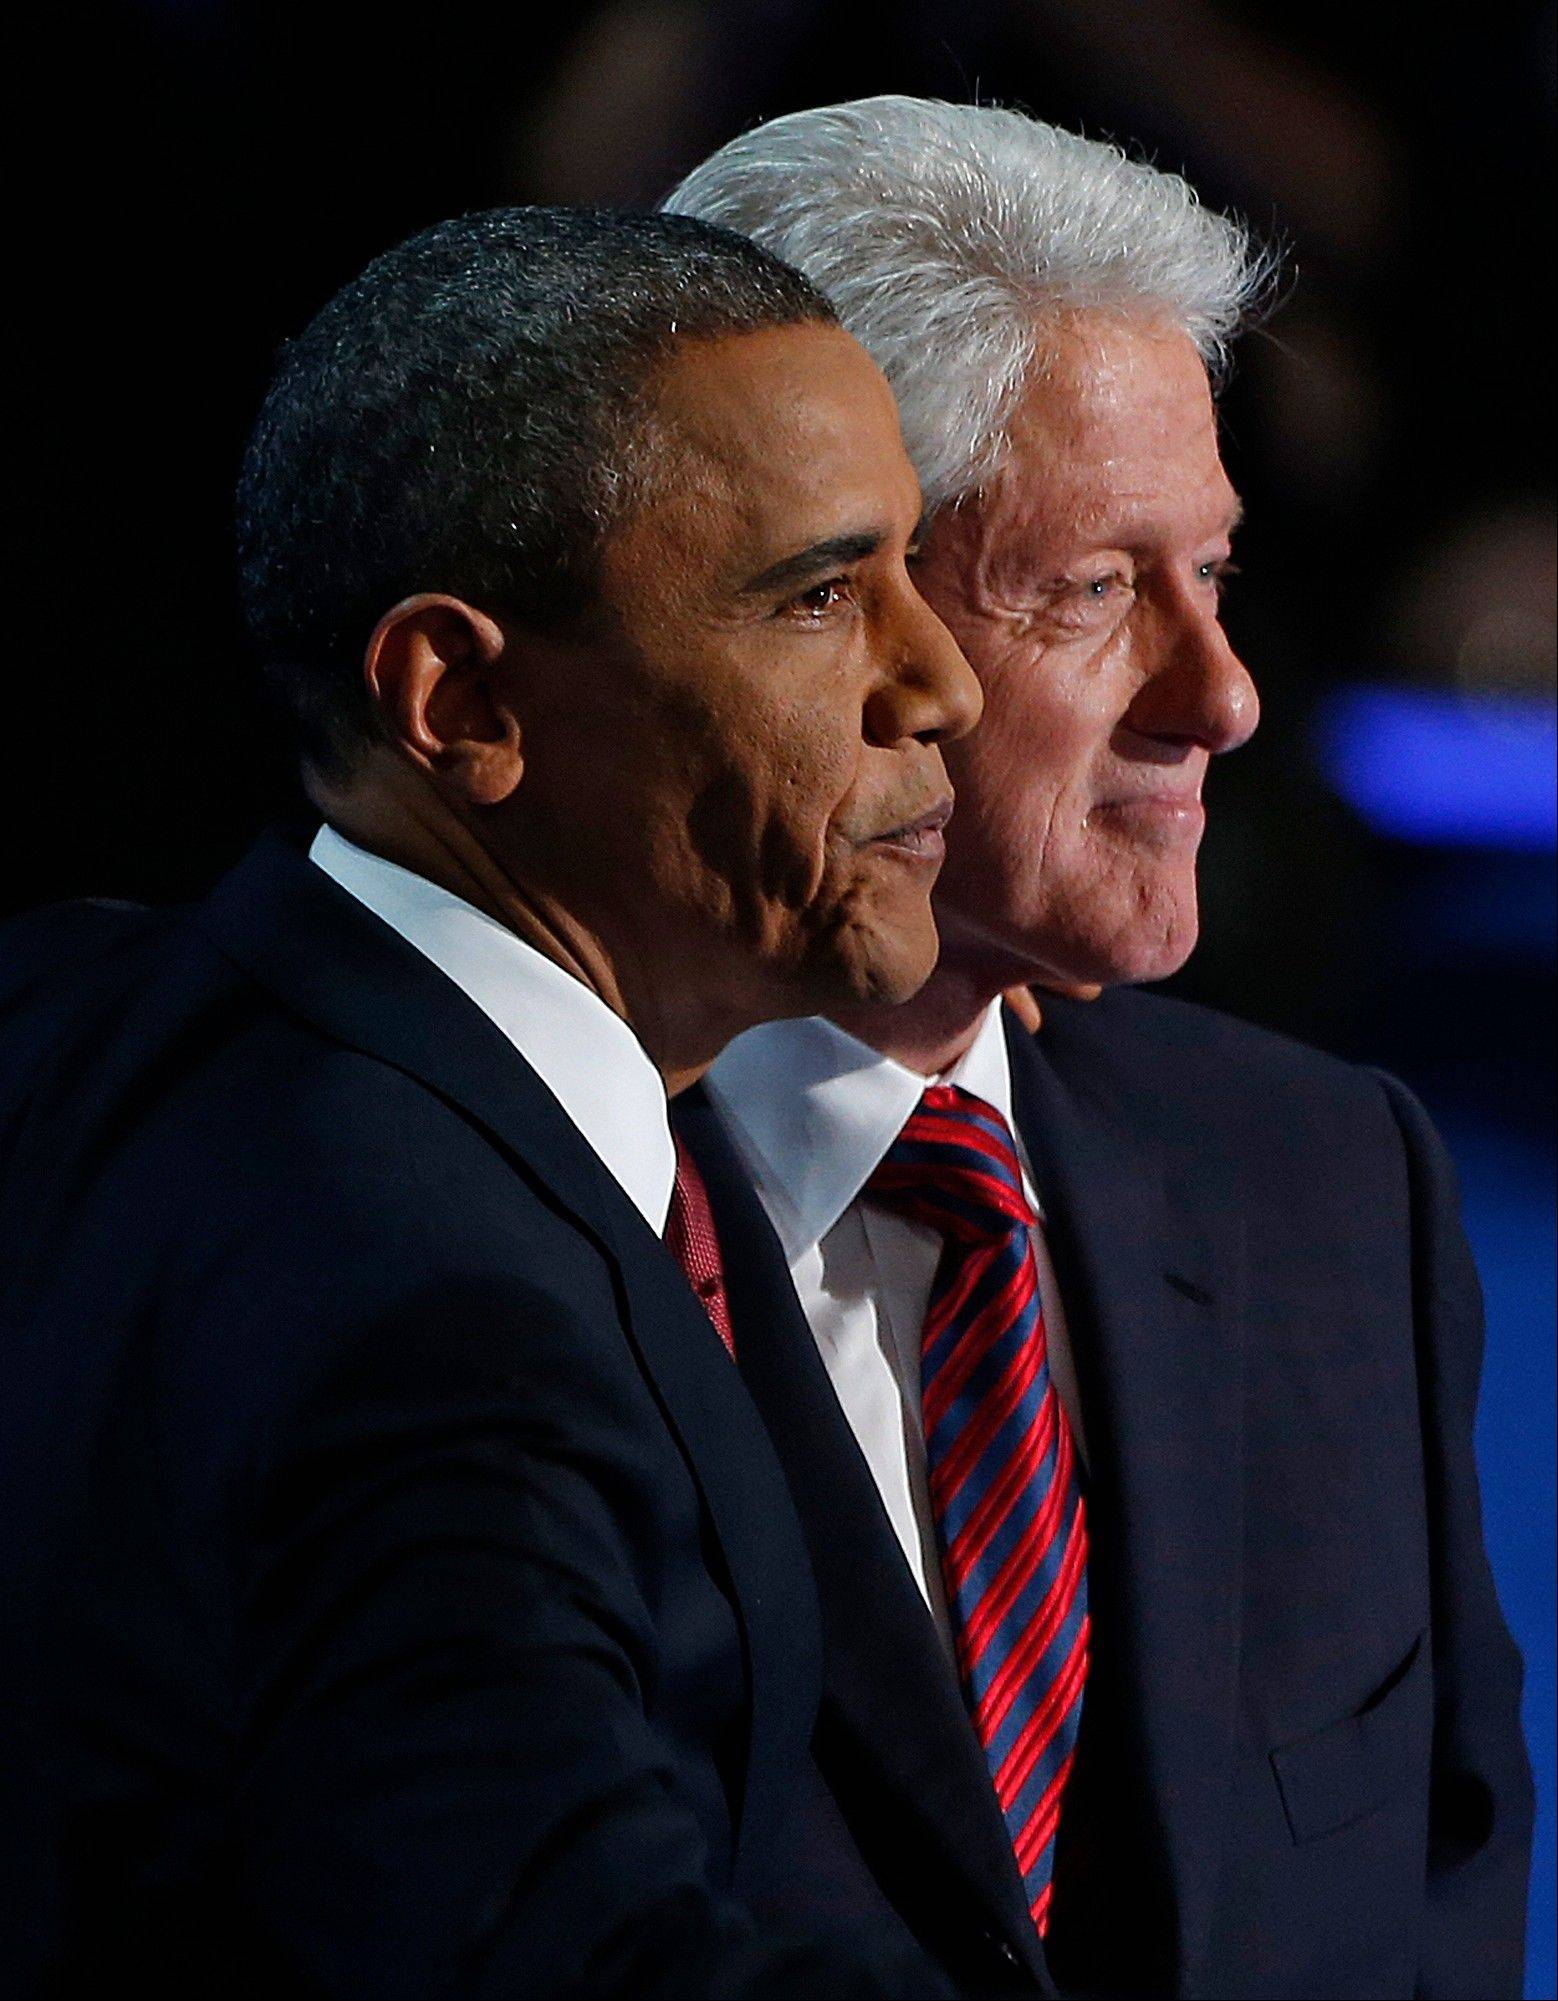 President Barack Obama stands with Former President Bill Clinton after Clintons� address to the Democratic National Convention in Charlotte, N.C., on Wednesday, Sept. 5, 2012.